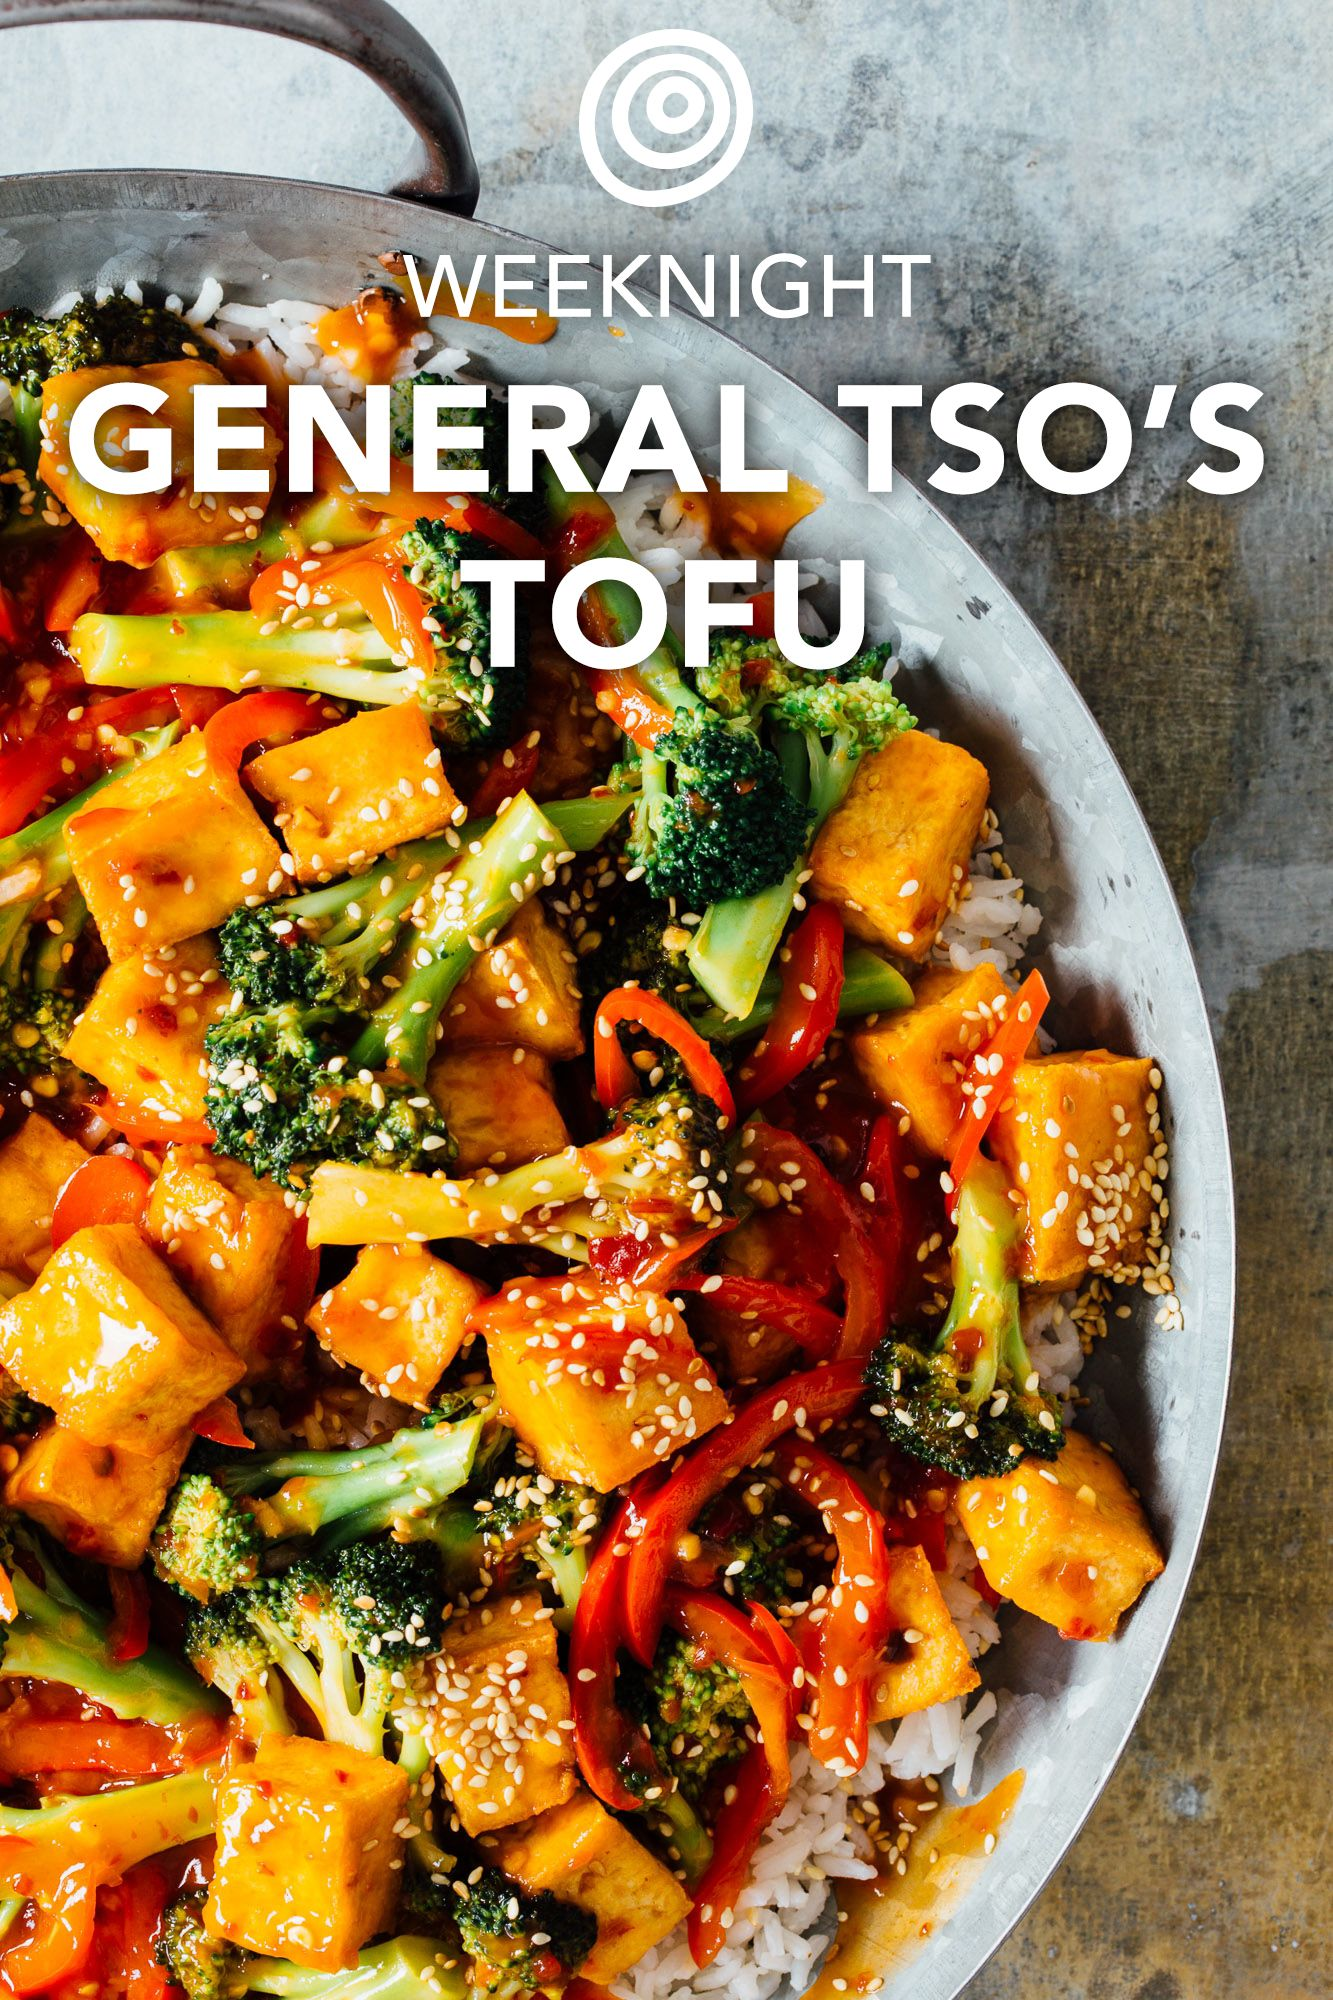 Weeknight General Tso's Tofu Recipe. If you're tempted to order Chinese takeout, squash that urge and try this healthy homemade sweet and spicy tofu stir-fry instead. This quick and easy recipe comes together in the same amount of time it takes to steam rice, and the tofu gets browned and crispy without all the fuss of deep-frying.